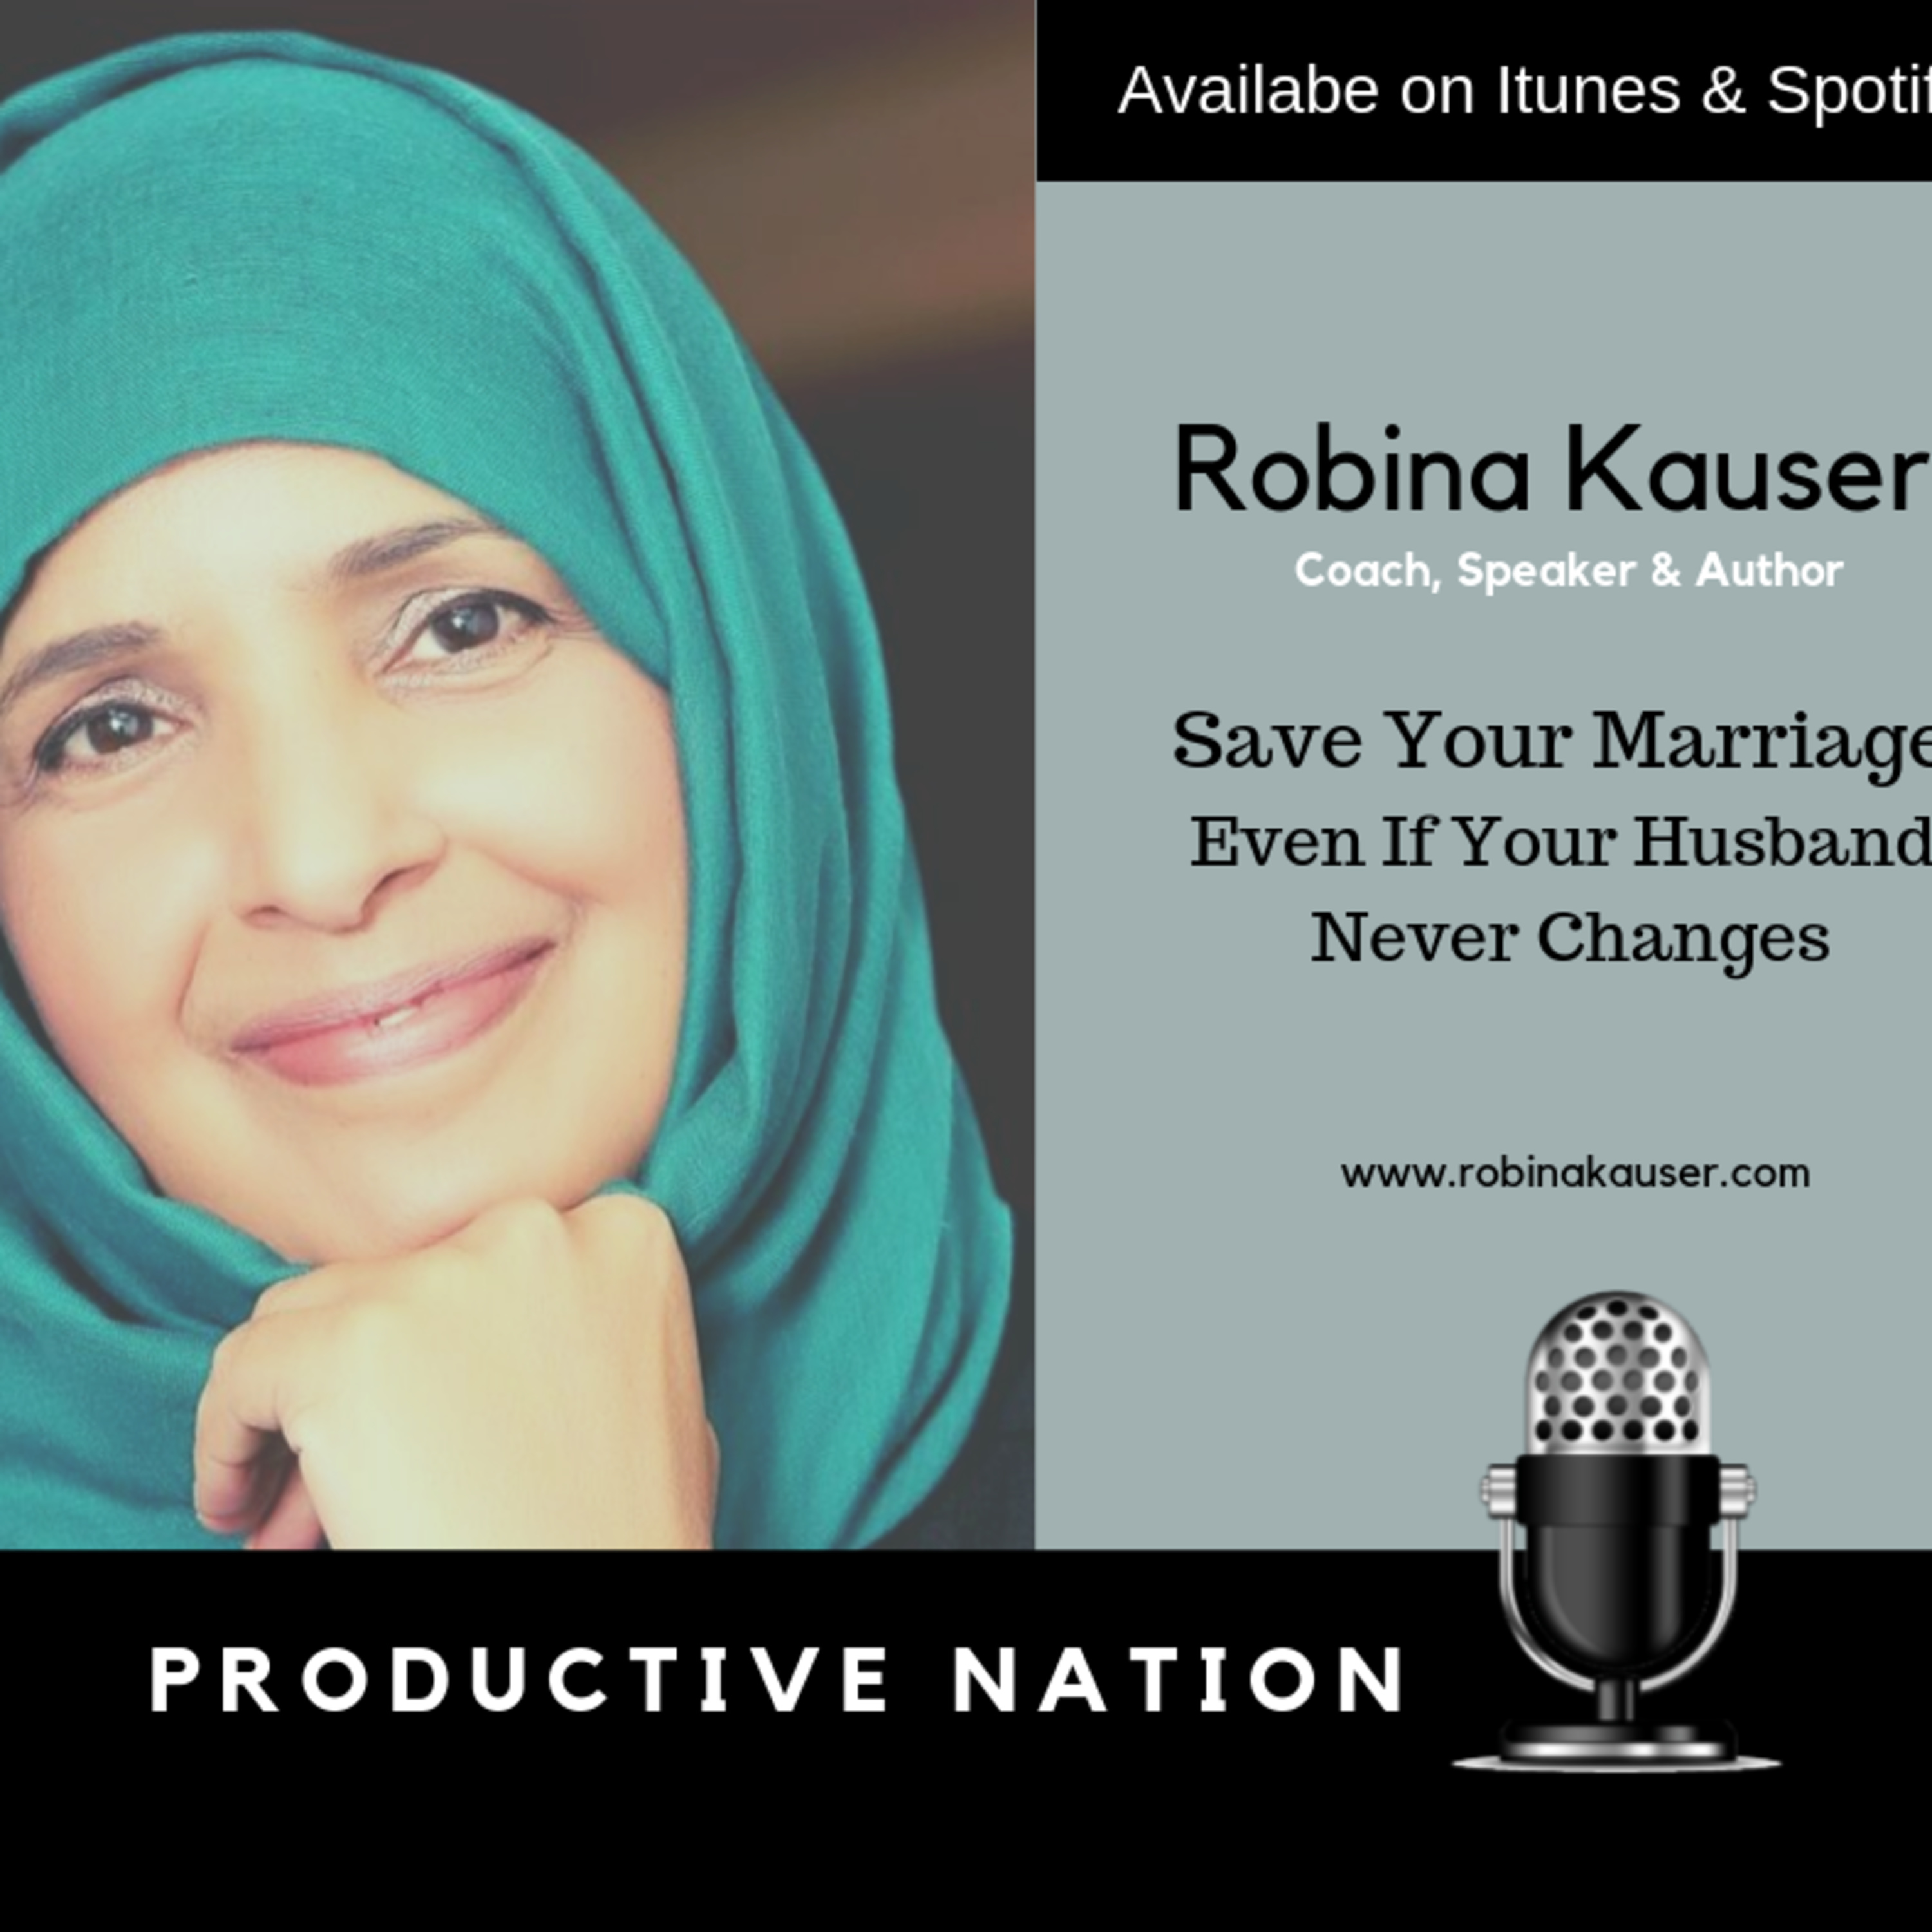 Save your marriage even if your husband  never changes - Robina Kauser